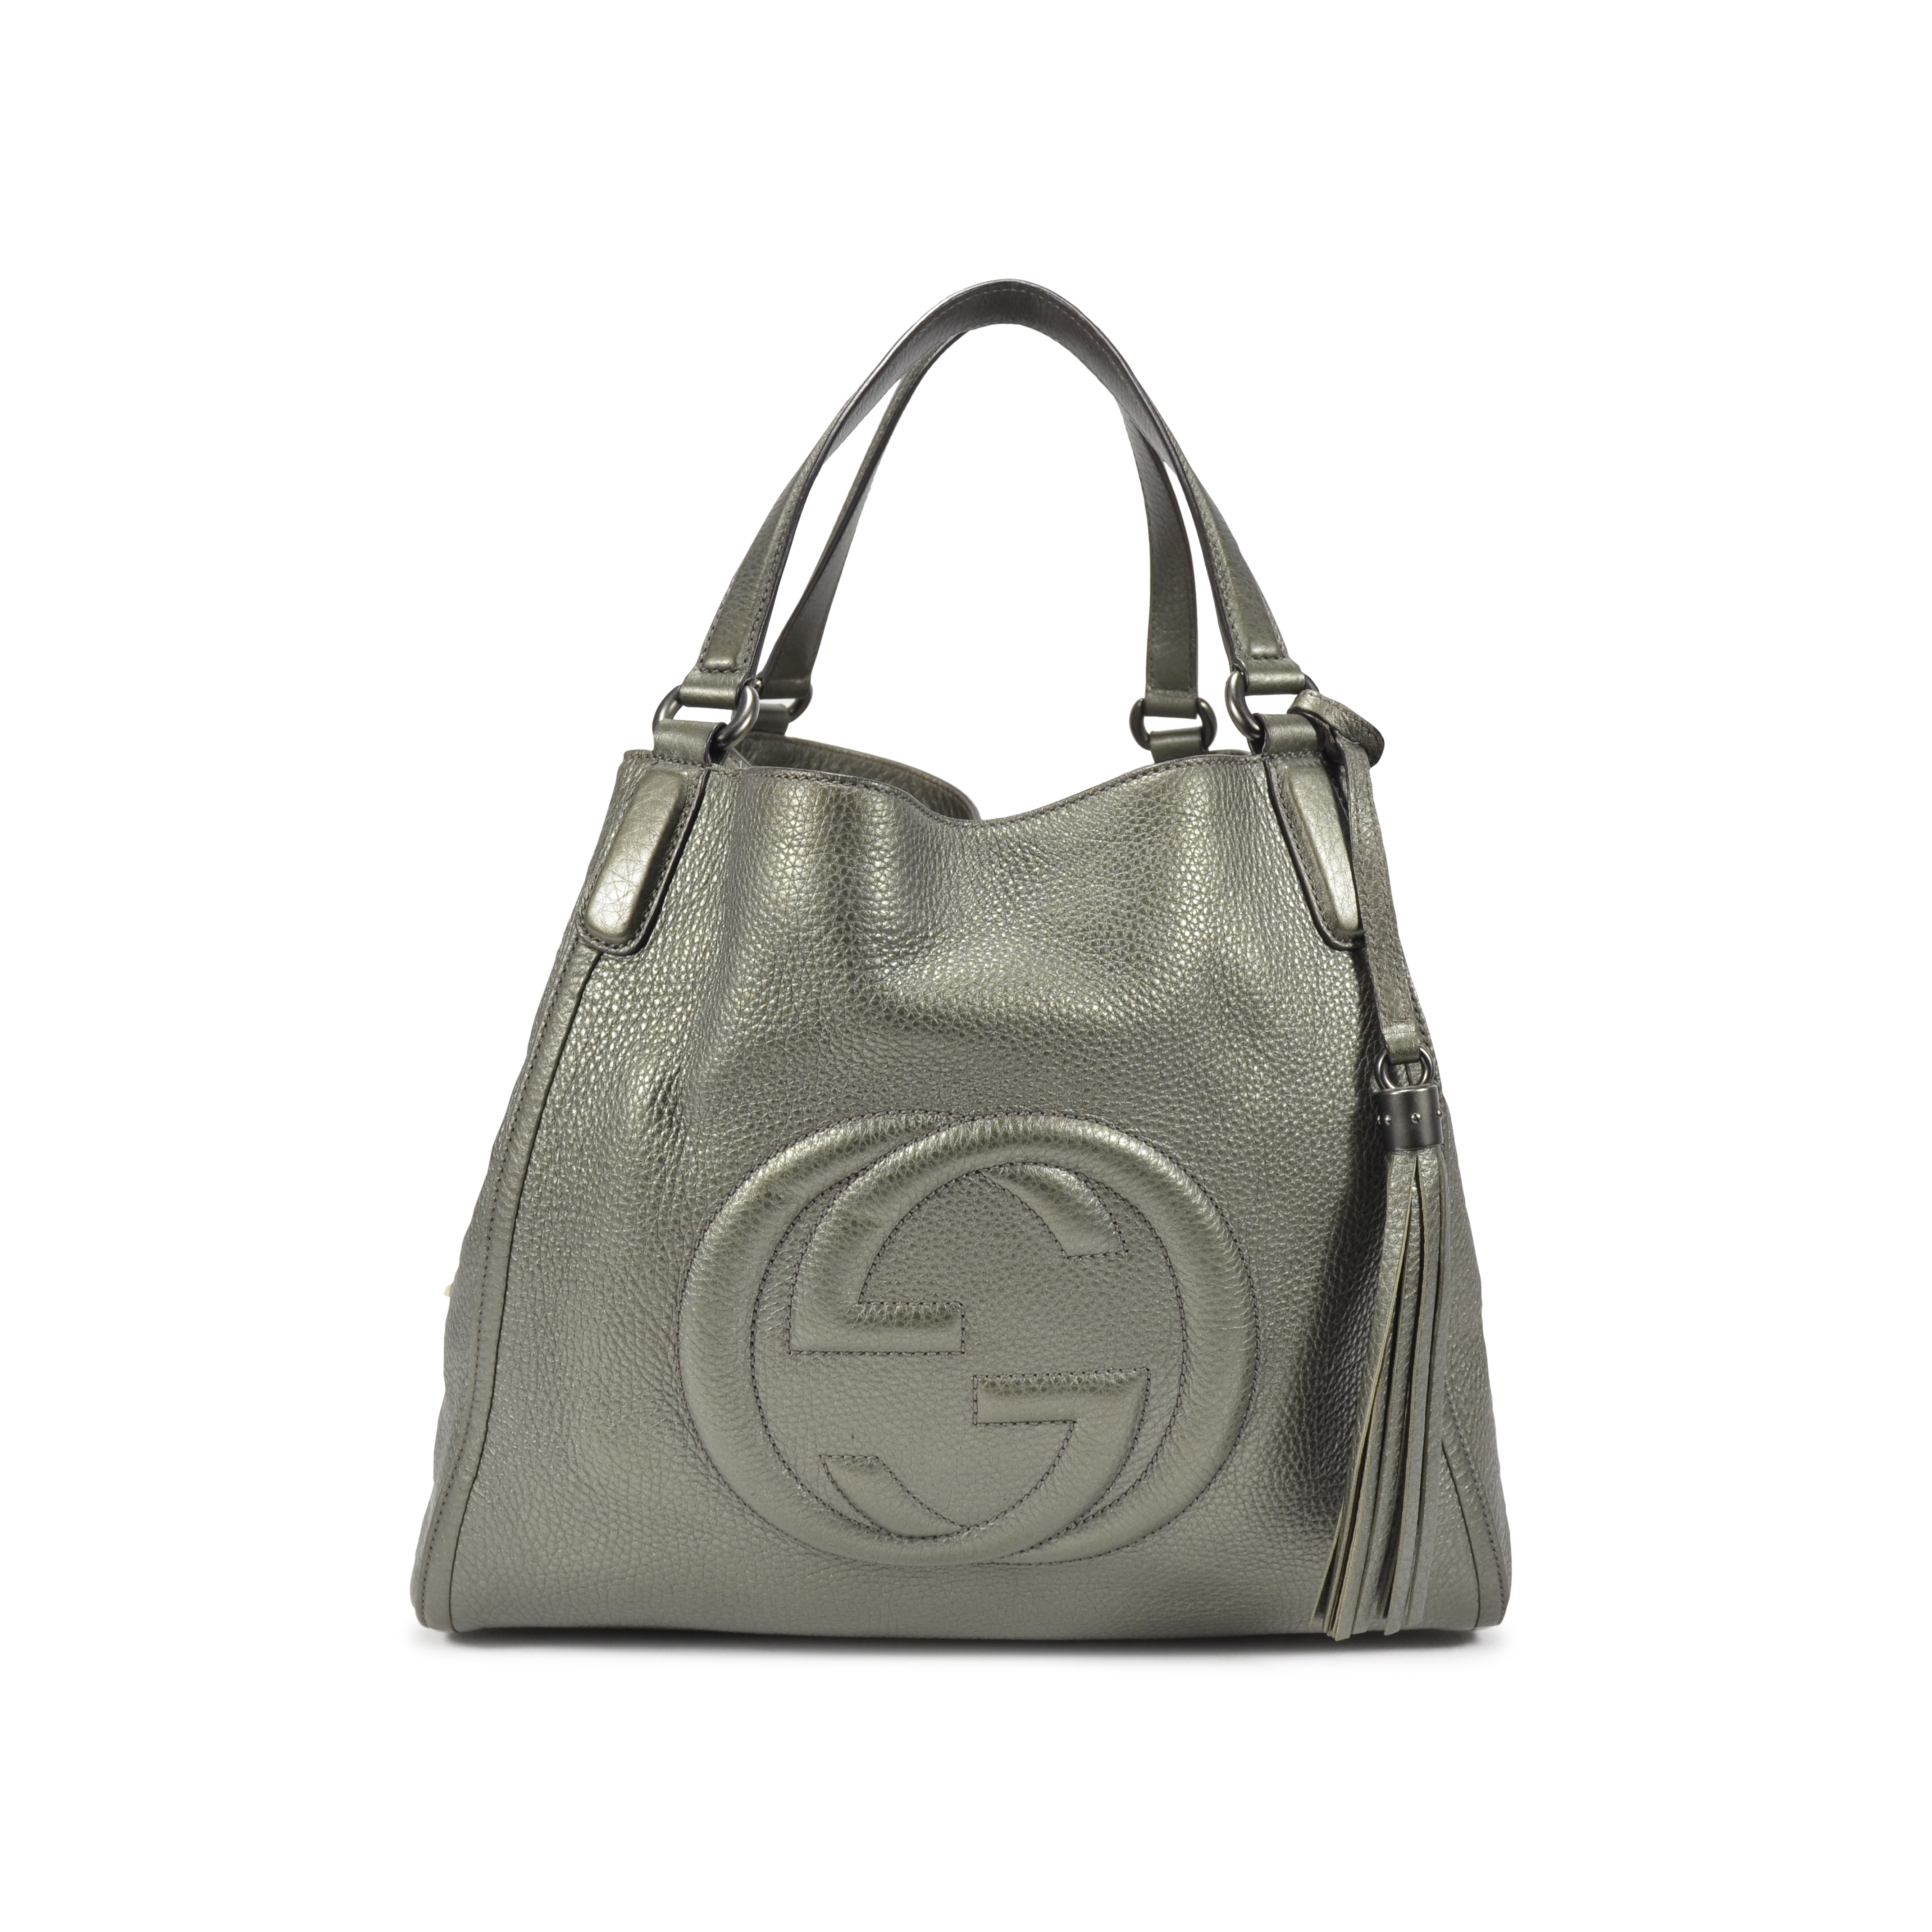 ed8312ae3a3 Authentic Second Hand Gucci Medium Soho Shoulder Bag (PSS-021-00011 ...